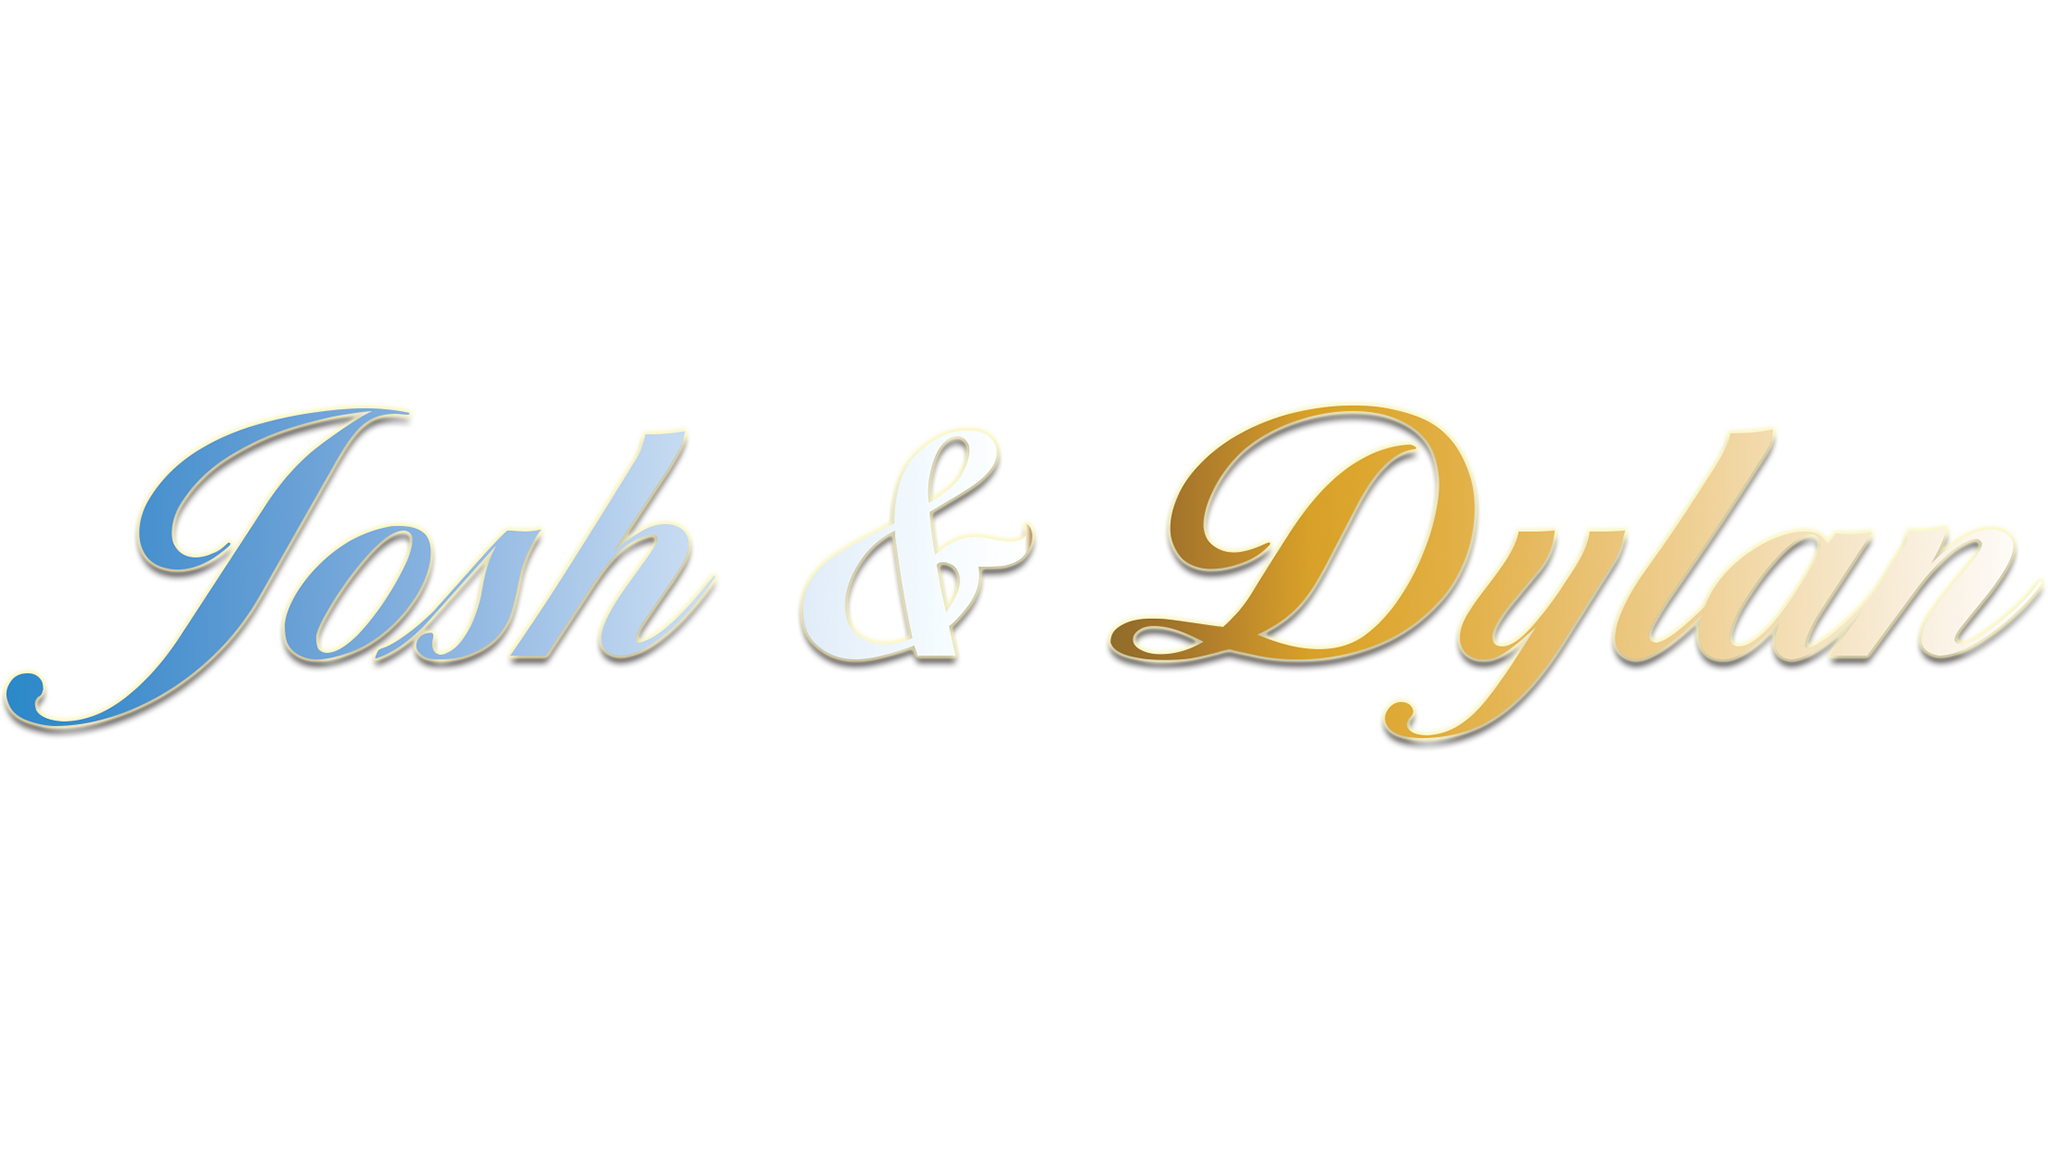 The Official Website for Josh And Dylan